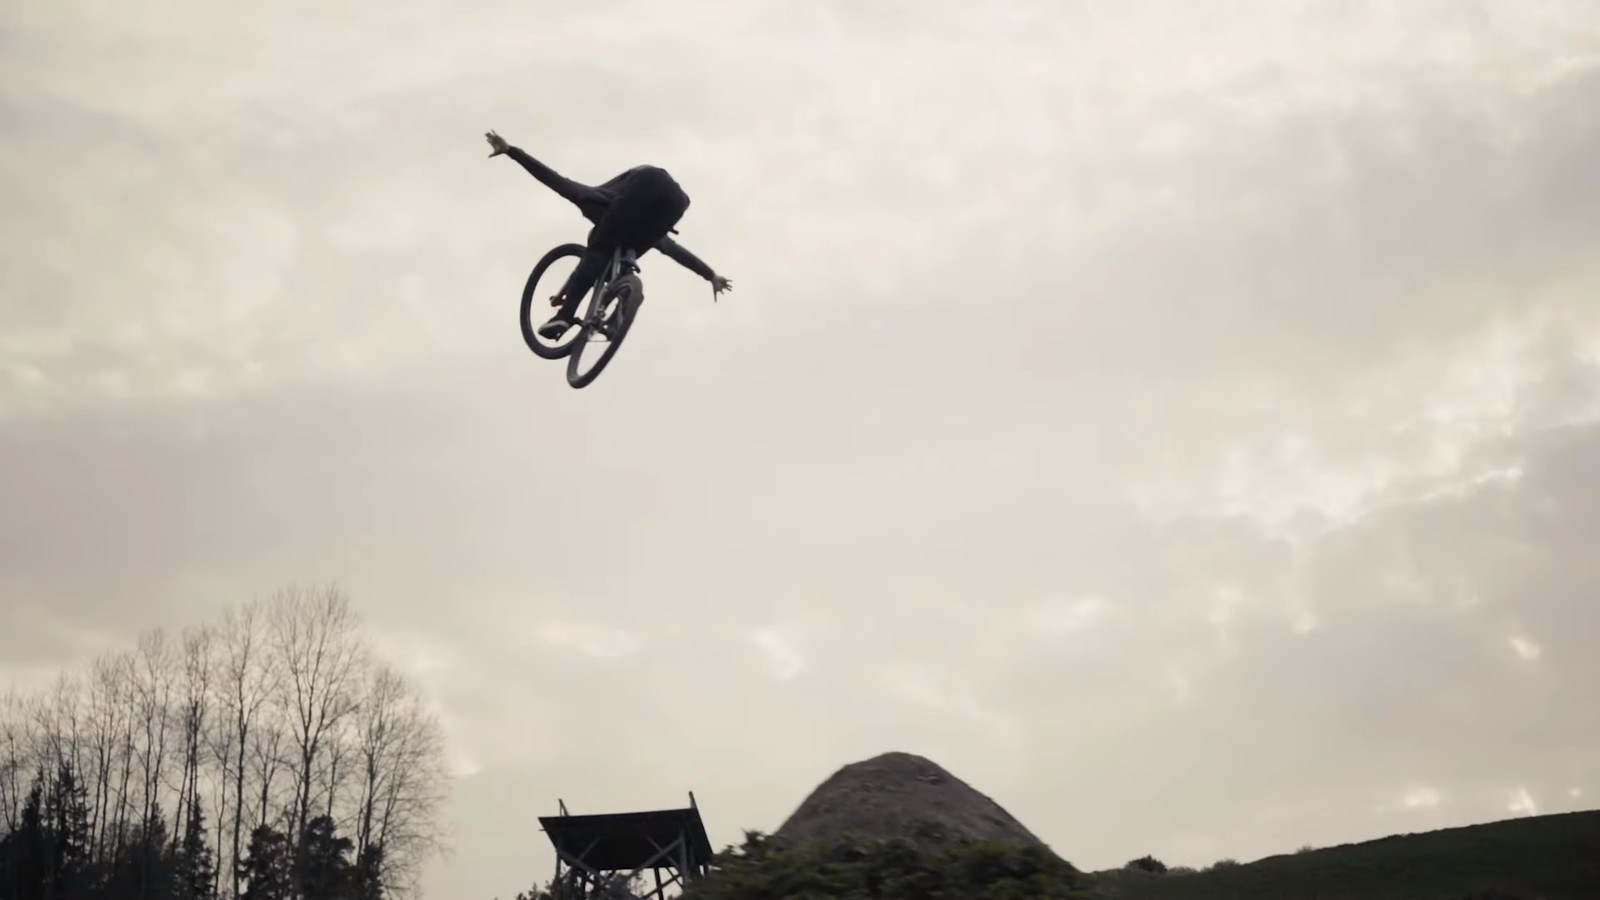 Ride Concepts Adds Max Fredriksson to Elite Athlete Team